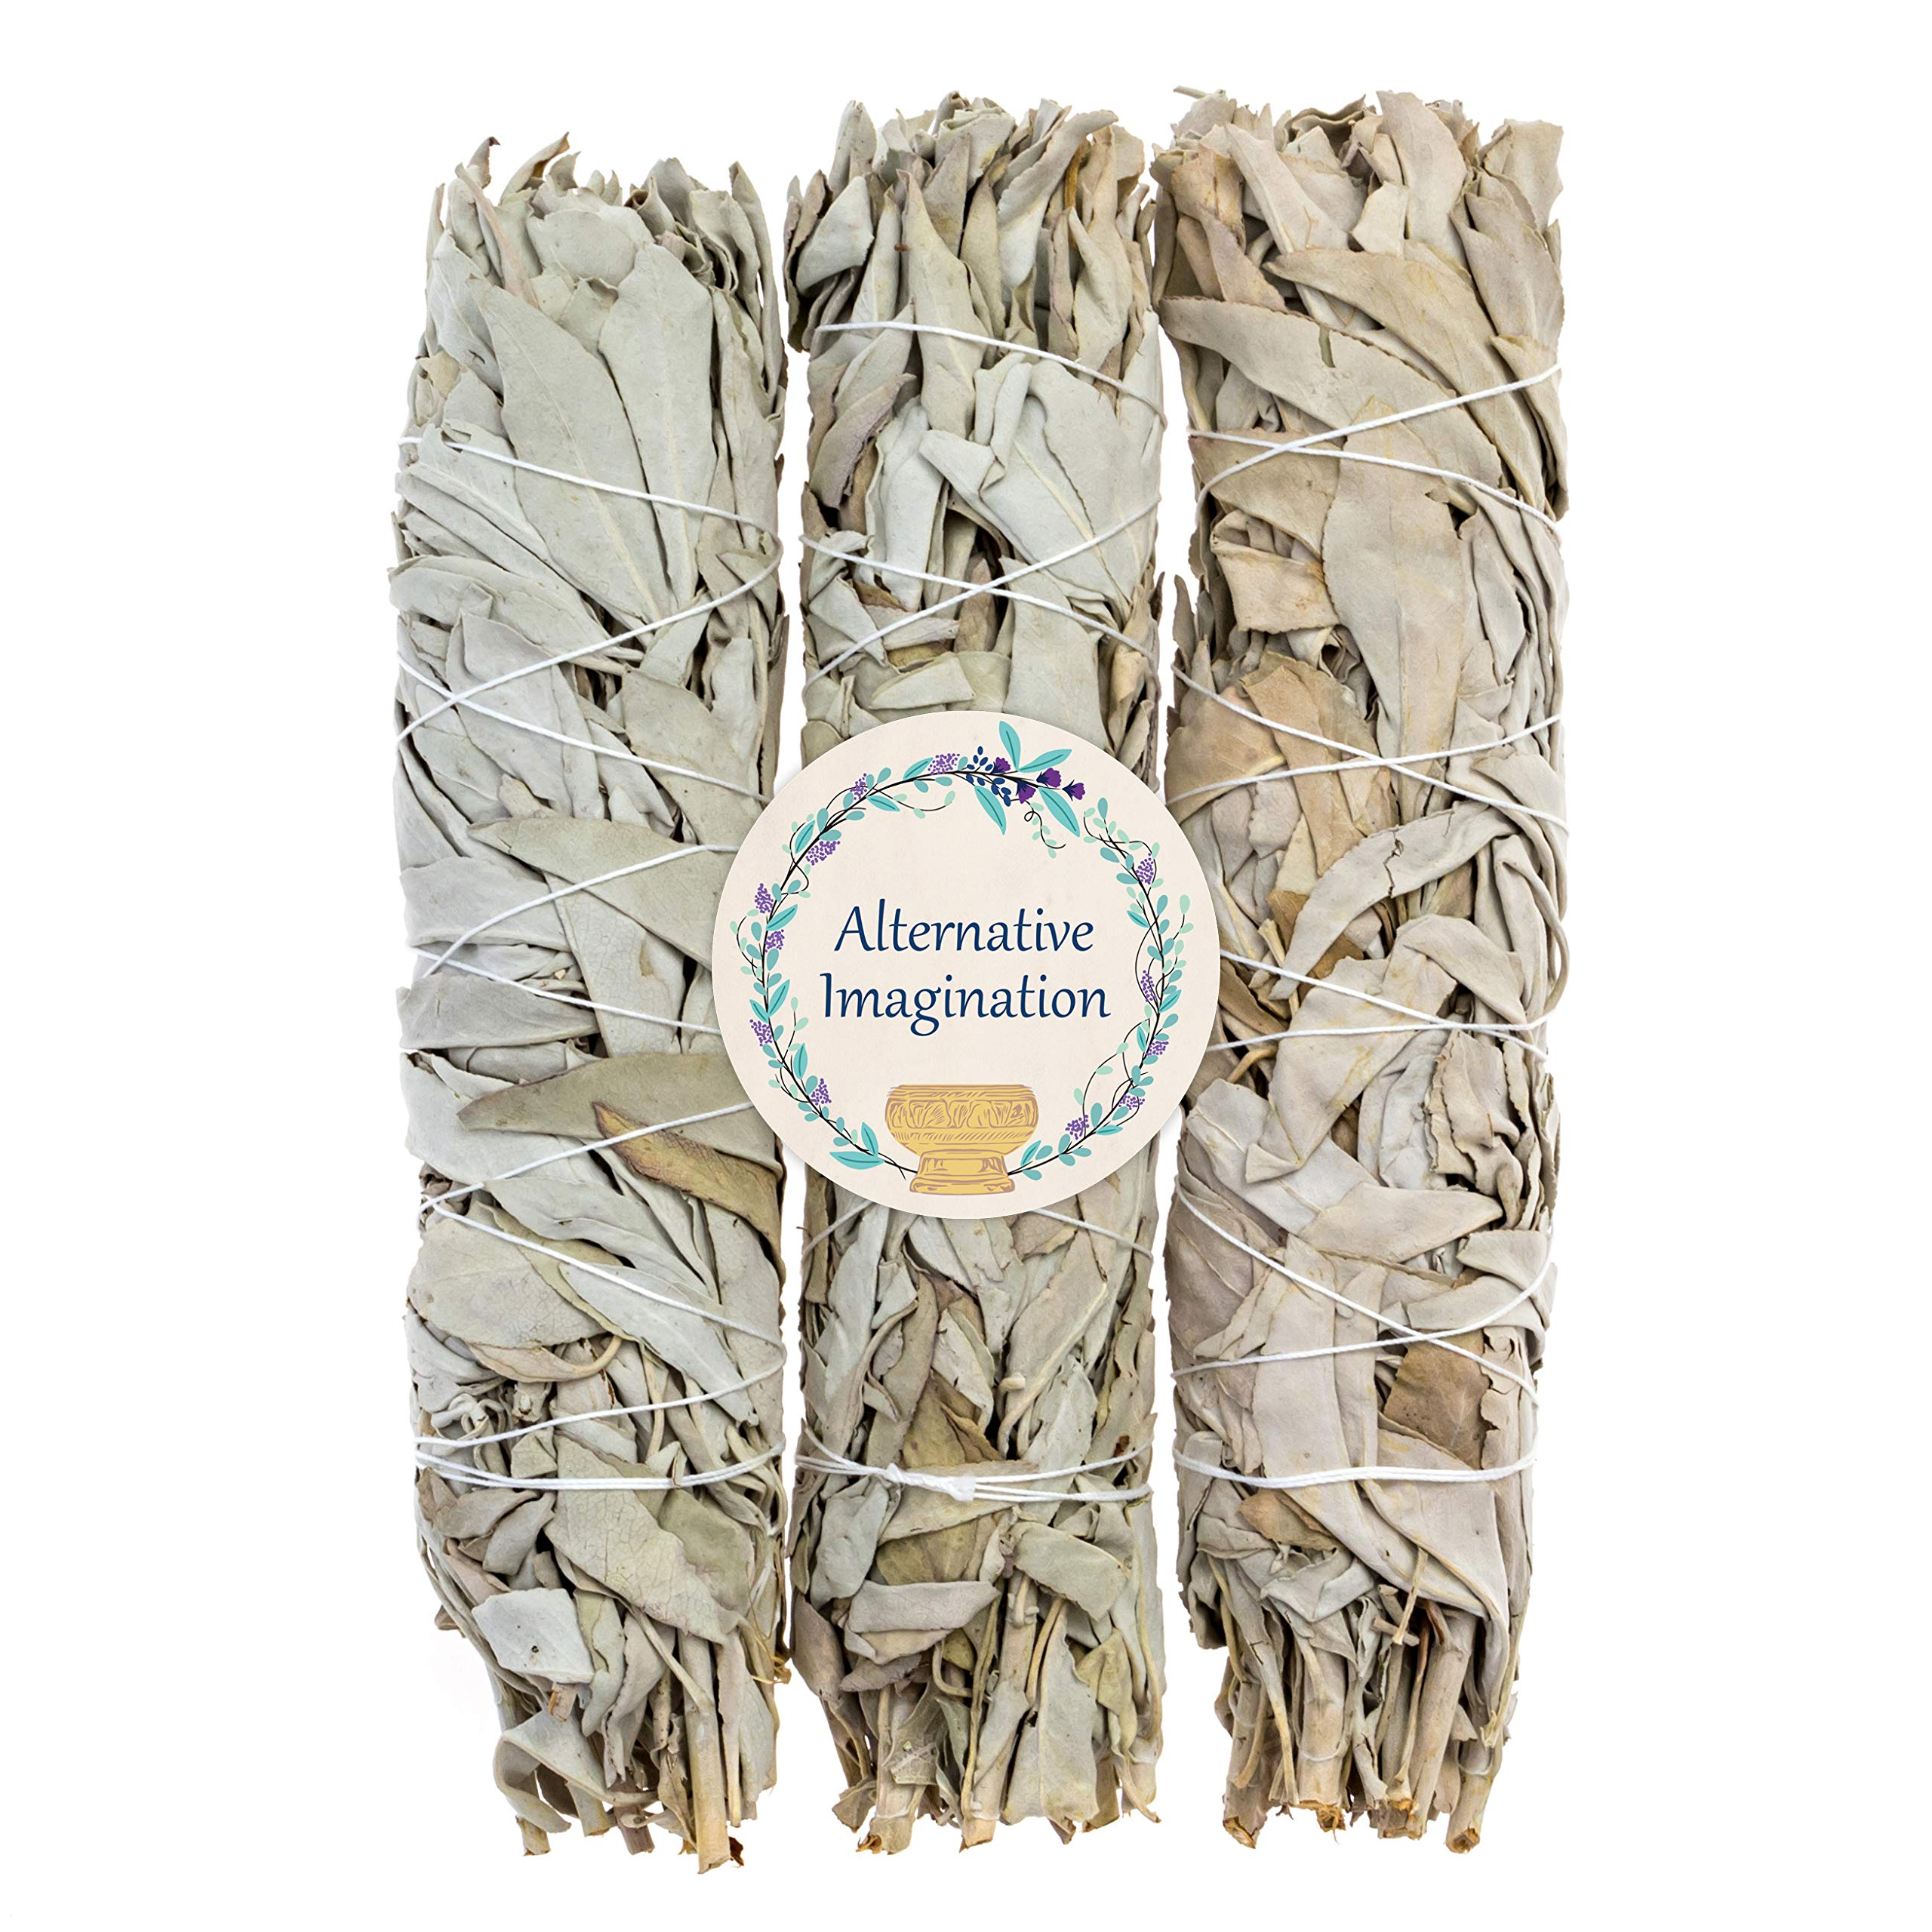 3 Premium California White Sage, Each Stick Approximately 8 Inches Long and 1.25 Inches Wide for Smudging Rituals, Energy Clearing, Protection, Incense, Meditation, Made in USA by Alternative Imagination